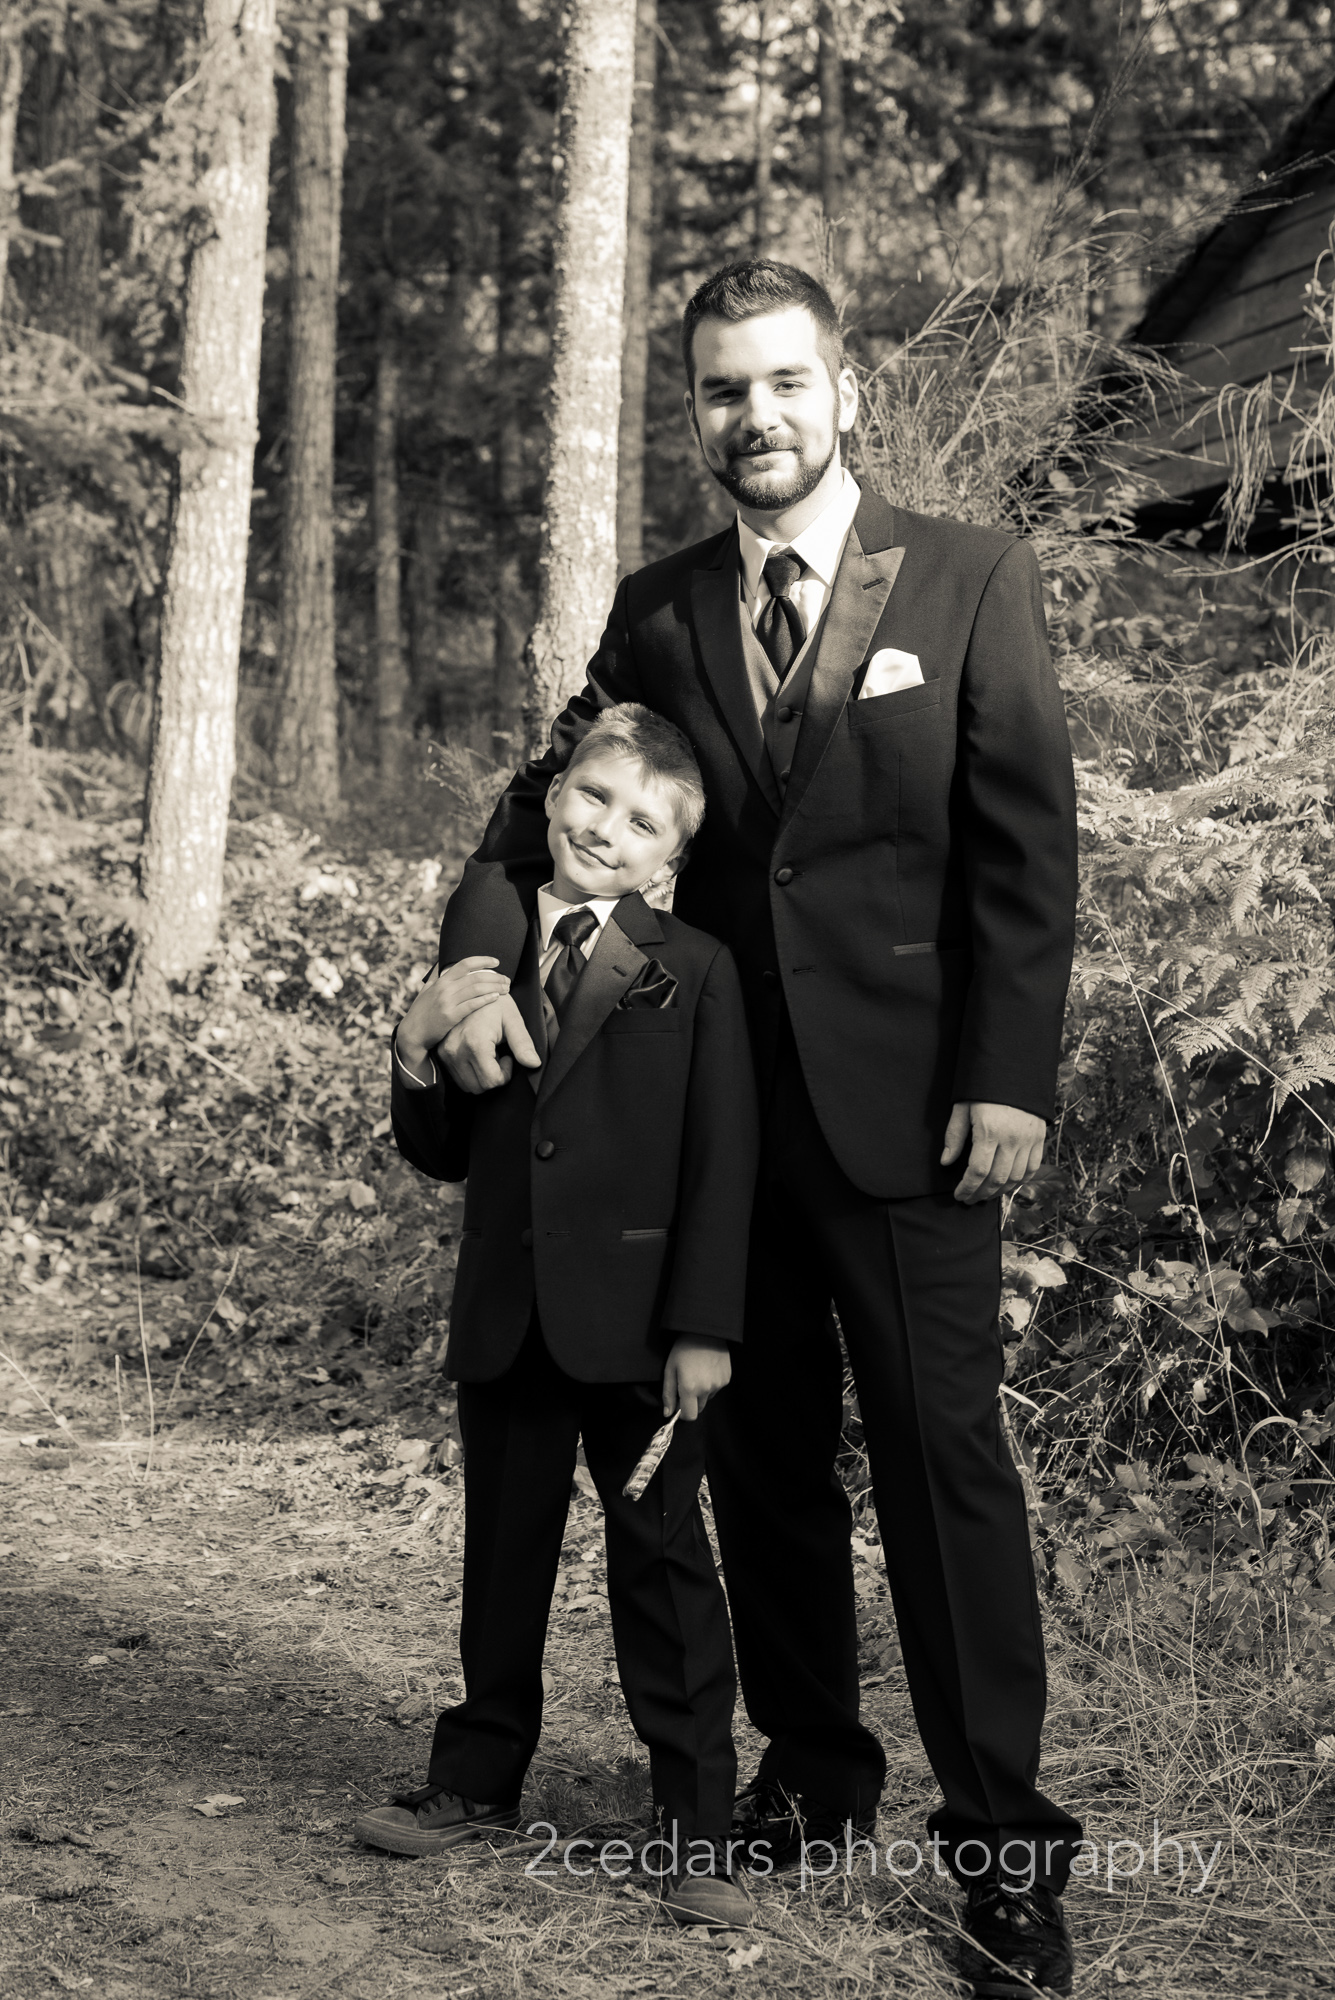 Black and White groom and son outdoor forest wedding